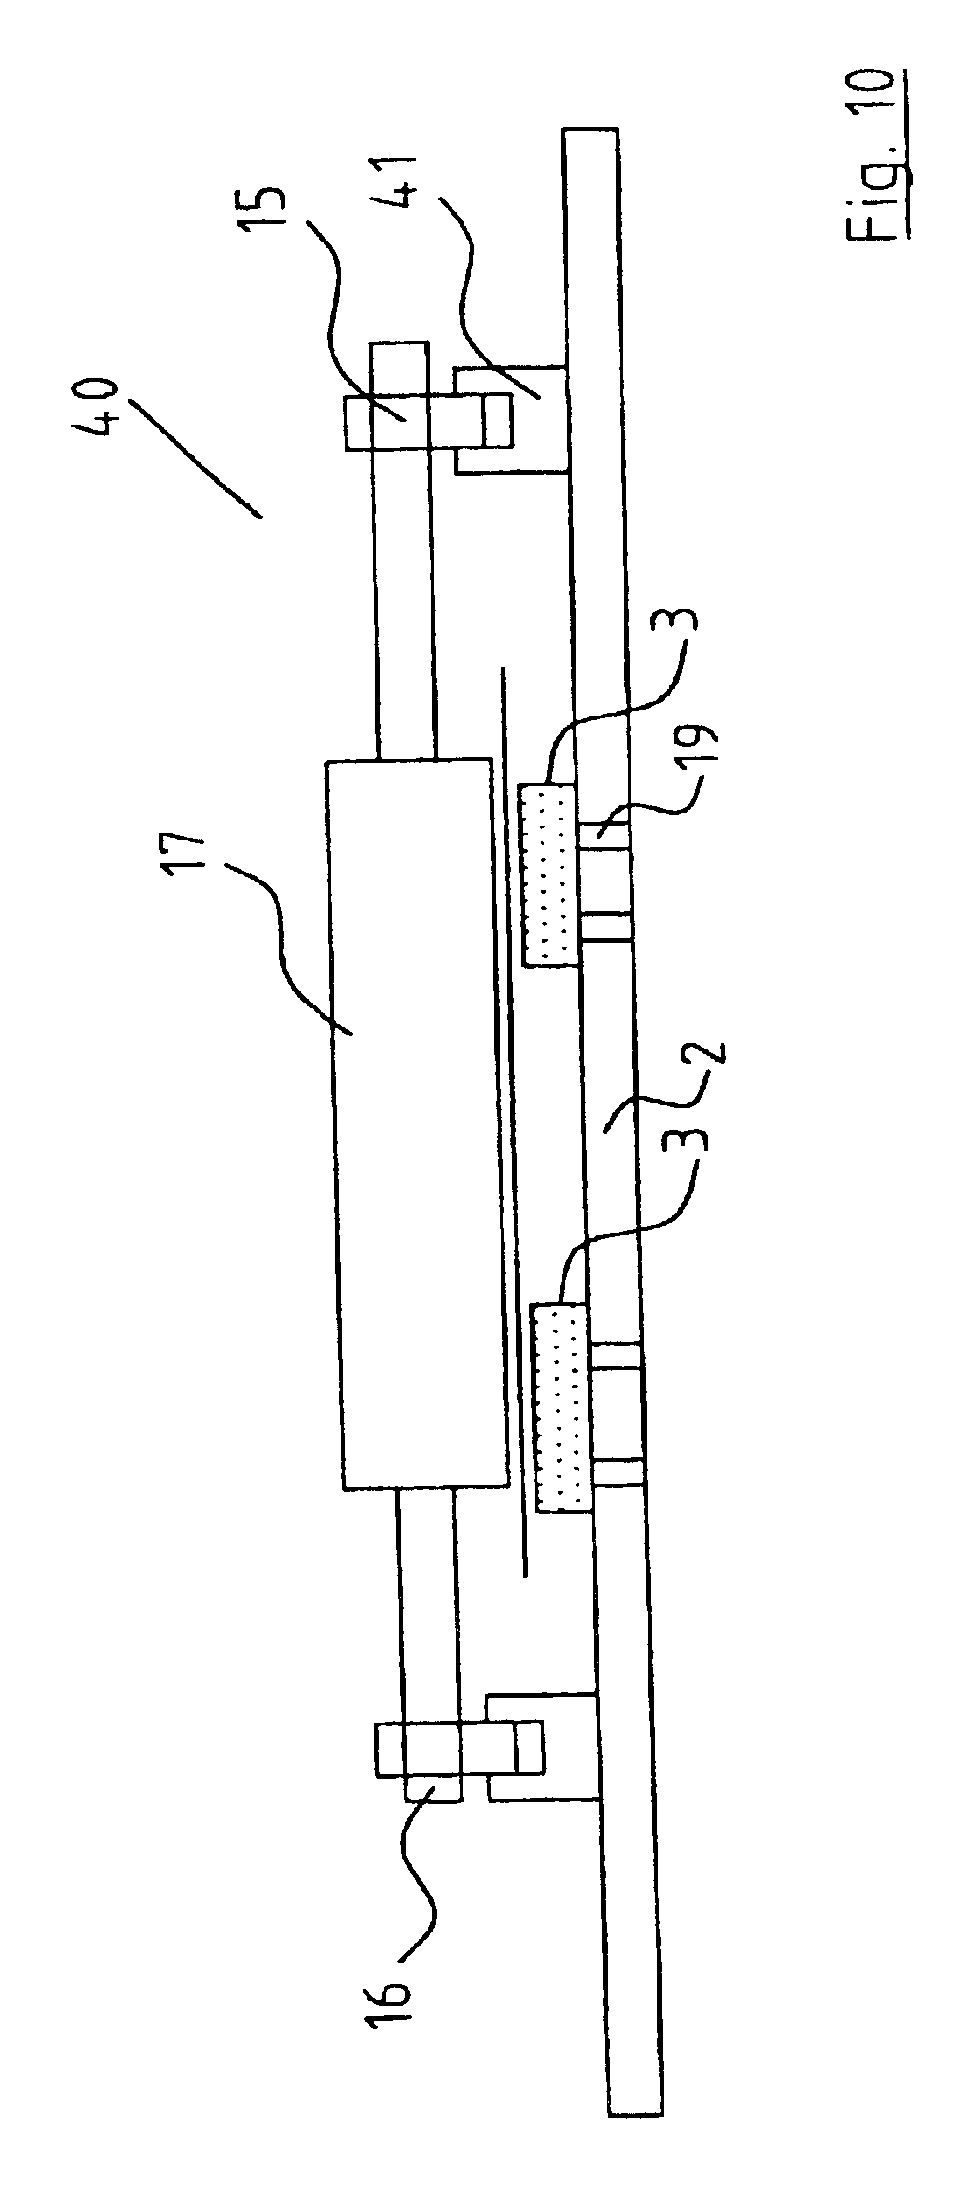 patent us6982876 - printed circuit board assembly